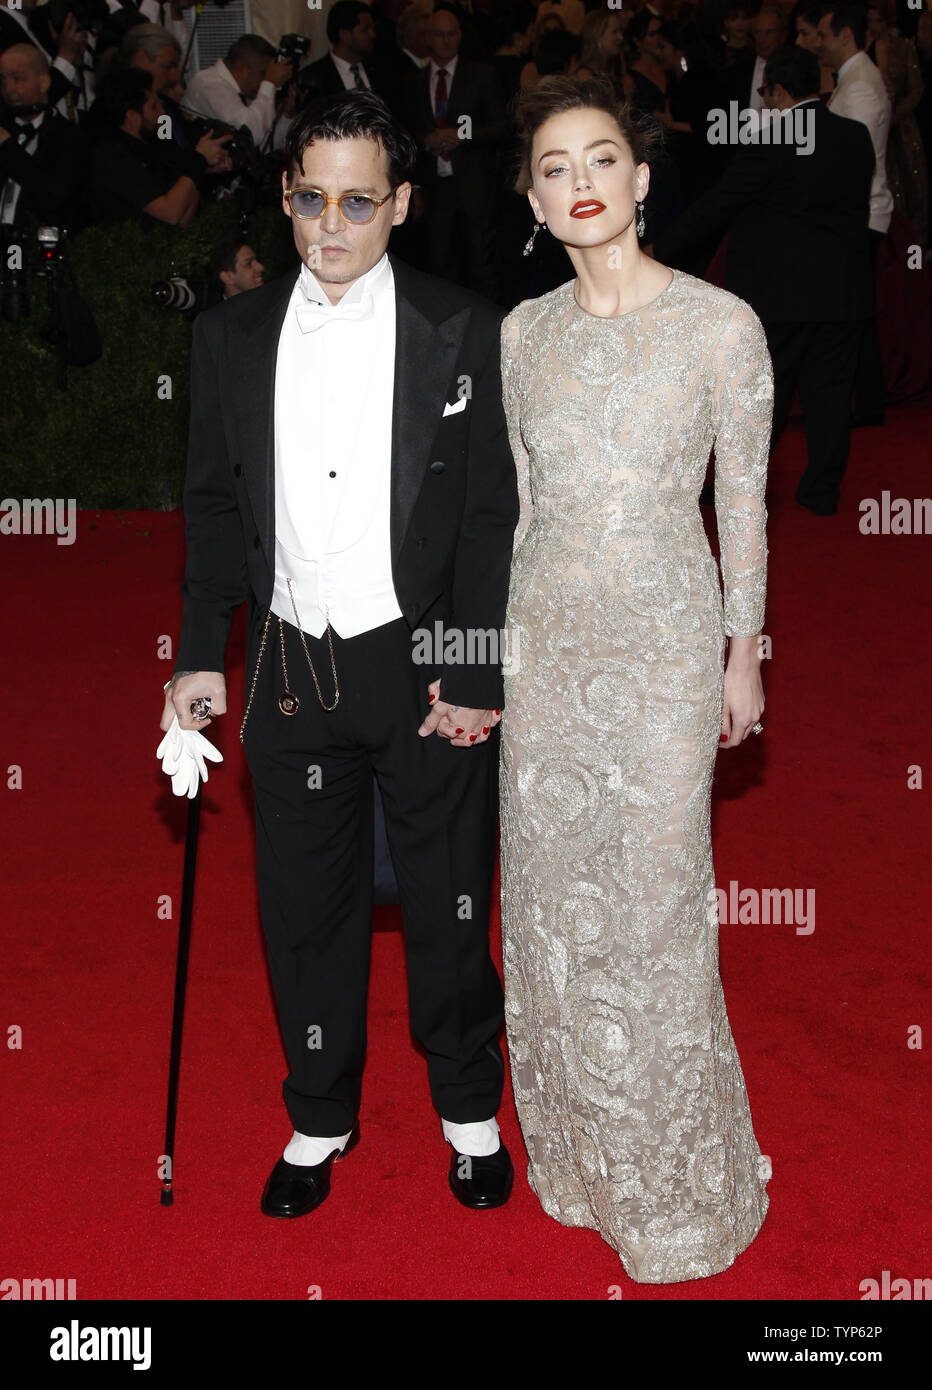 Johnny Depp and Amber Heard arrive on the red carpet at the Costume Institute Benefit celebrating the opening of Charles James: Beyond Fashion and the new Anna Wintour Costume Center at the Metropolitan Museum of Art in New York City on May 5, 2014.    UPI/John Angelillo - Stock Image